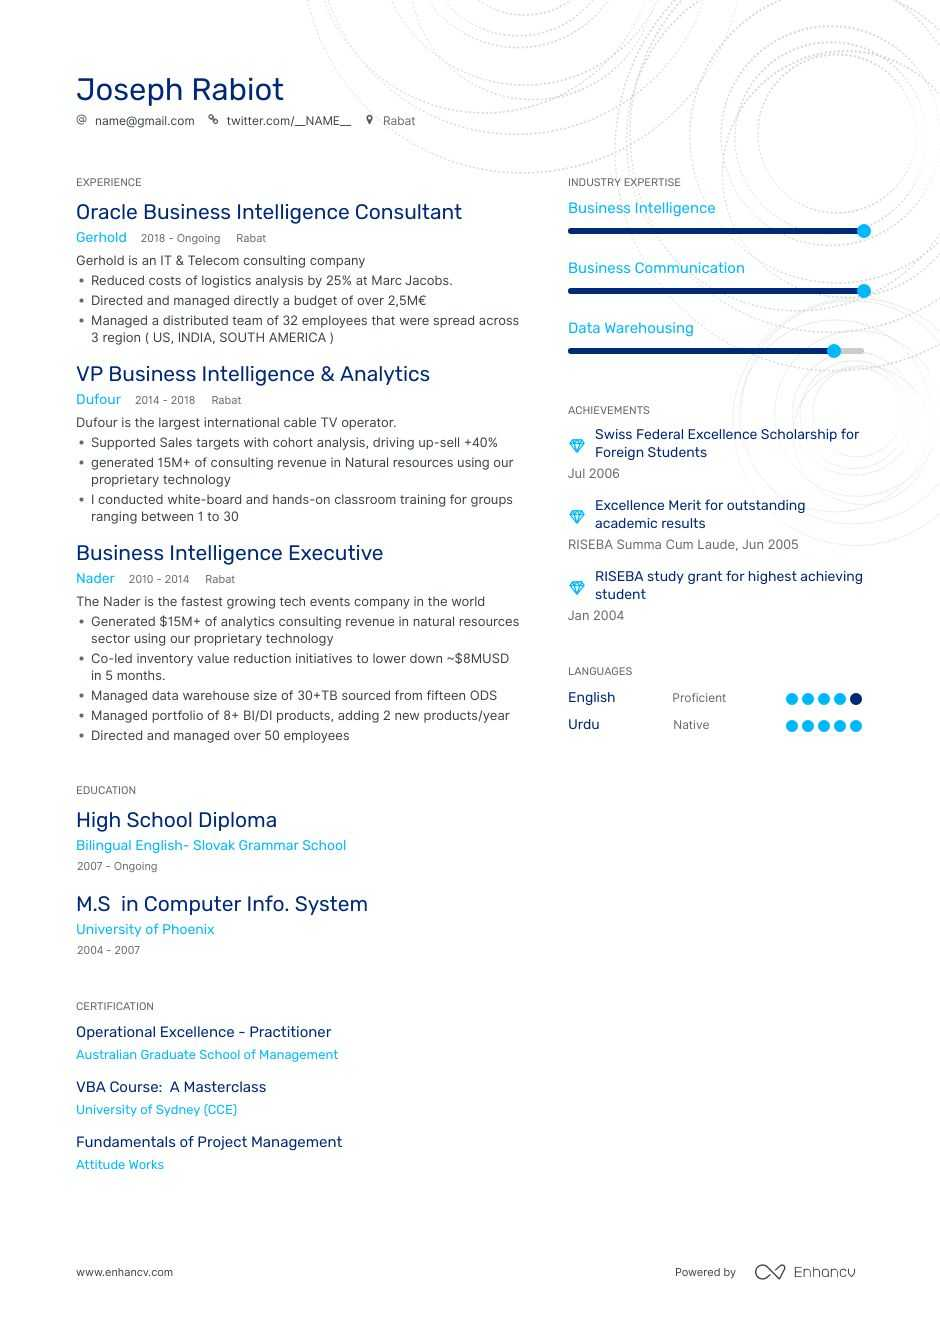 business intelligence resume examples expert advice enhancv senior analyst office medical Resume Senior Business Intelligence Analyst Resume